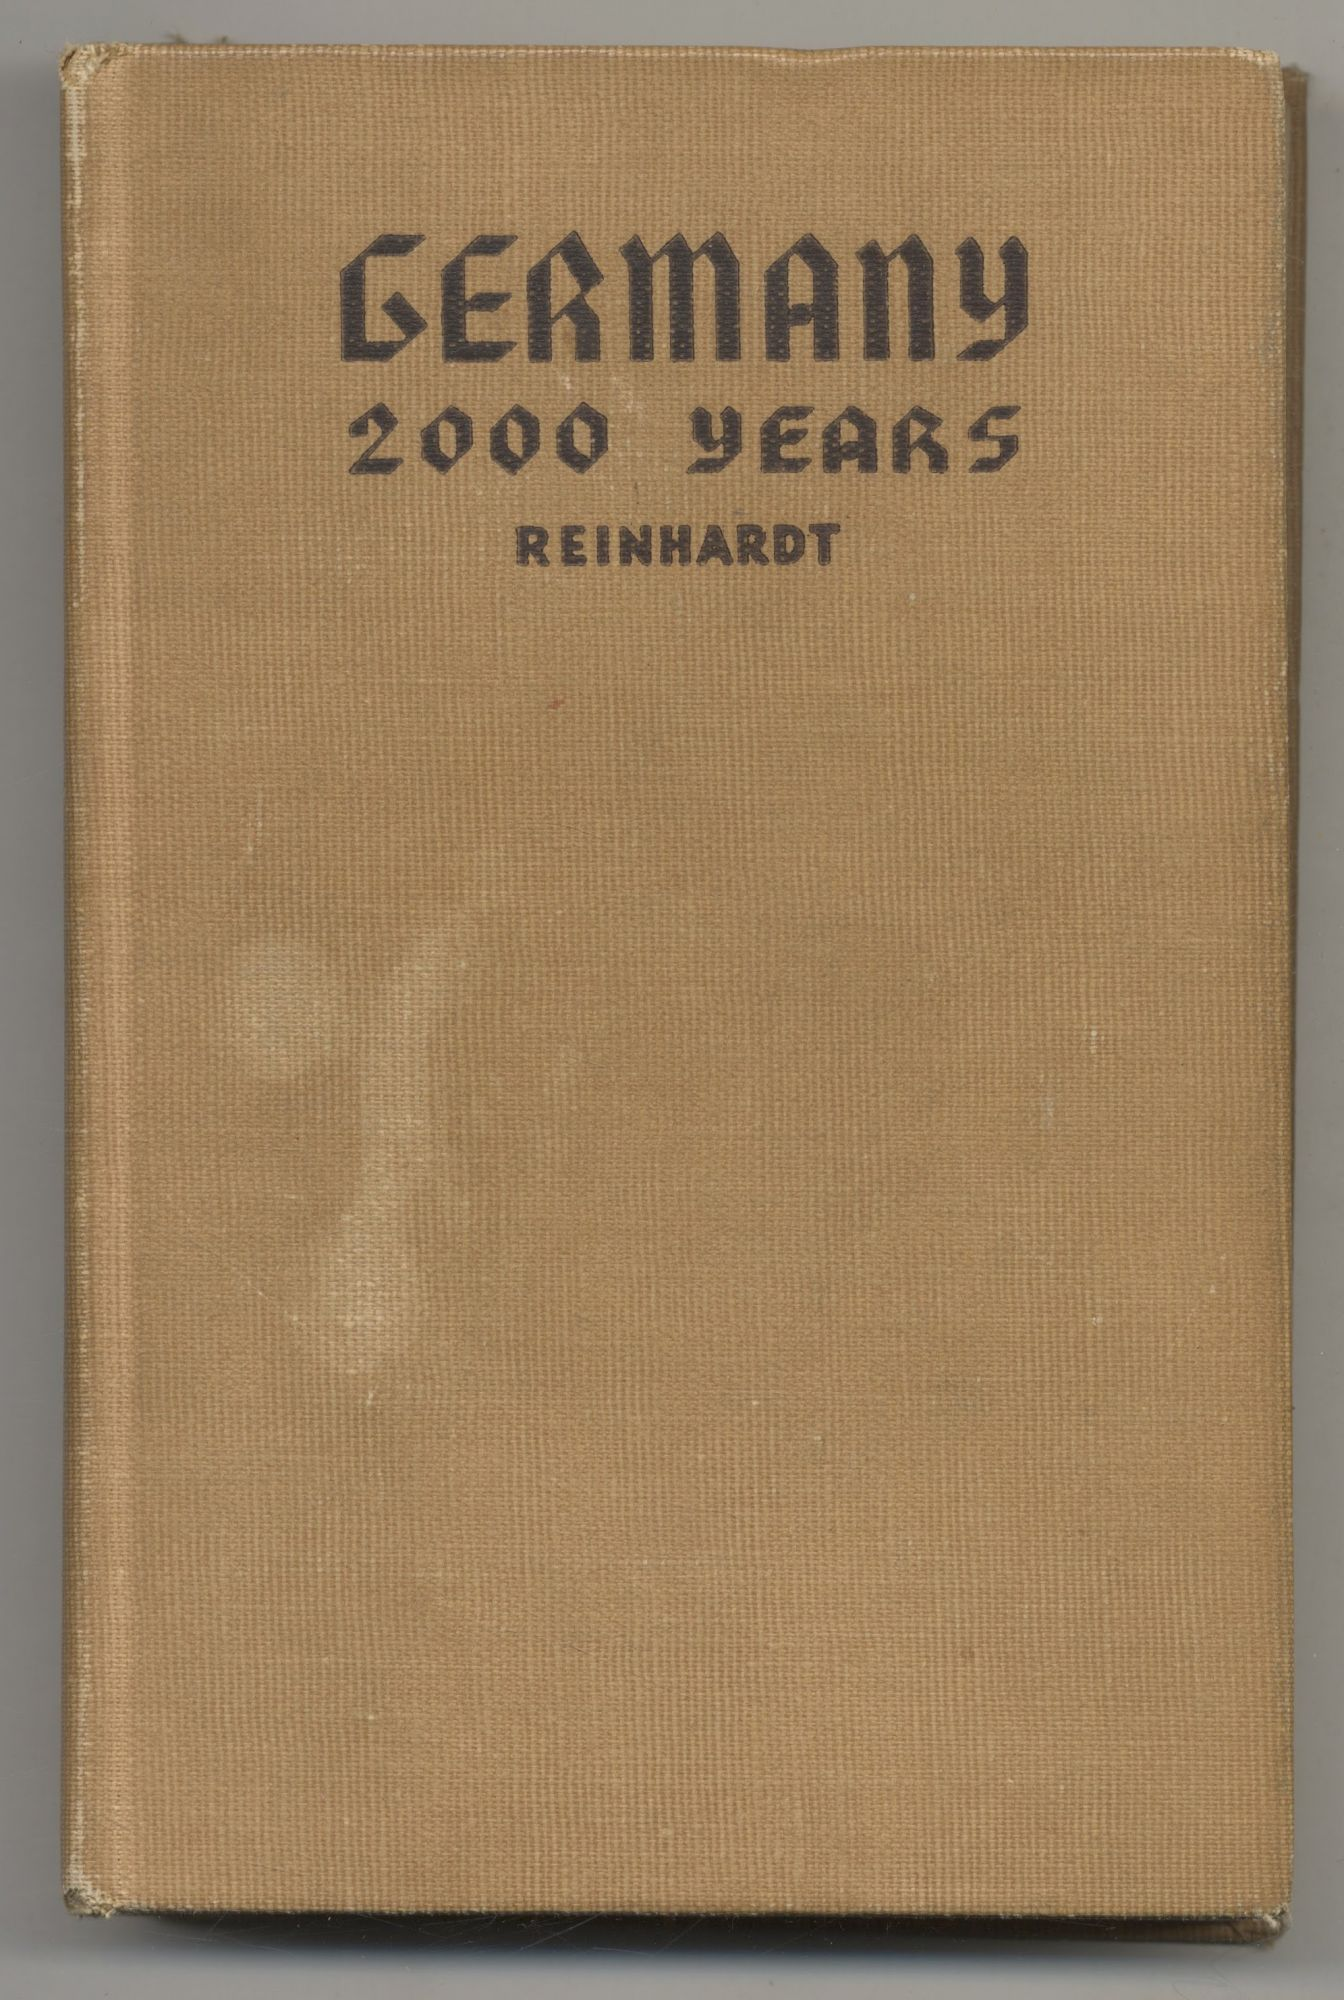 Germany 2000 Years. Kurt F. Reinhardt.